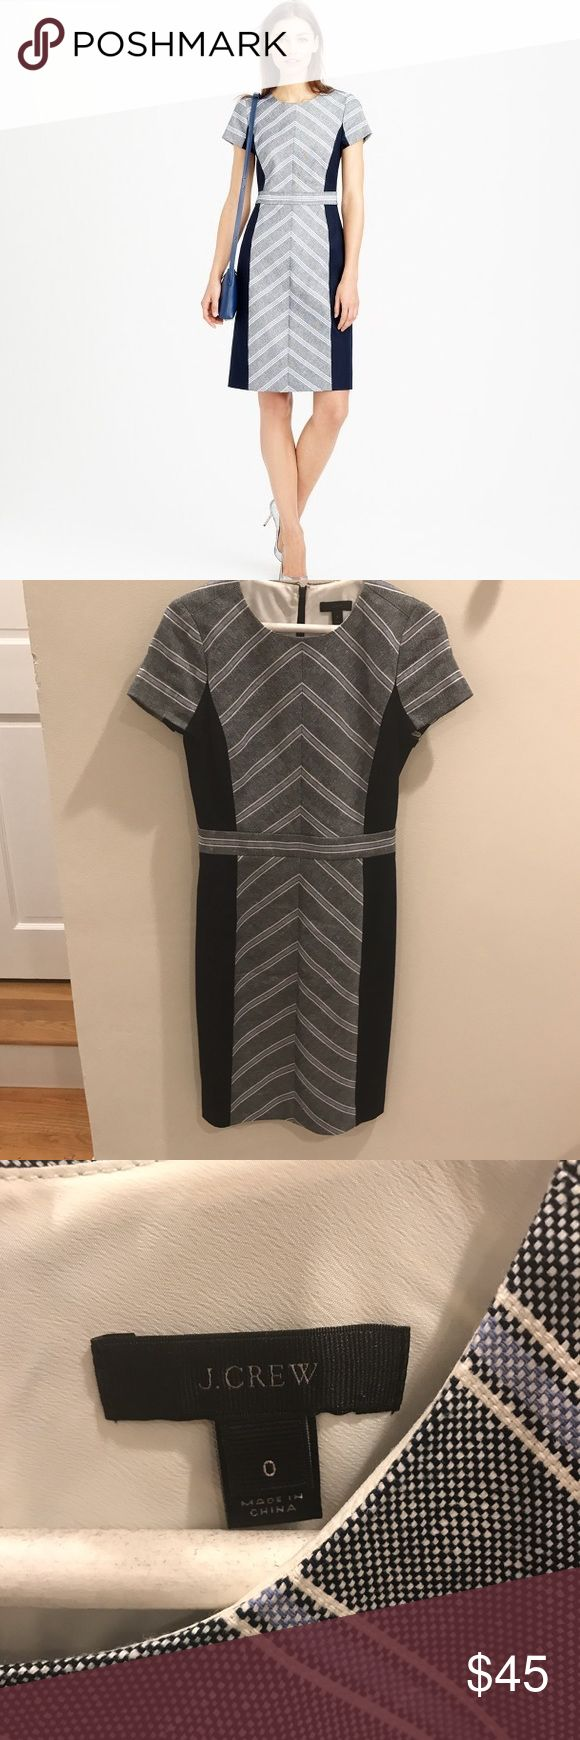 J. Crew navy chevron dress J. Crew navy color lock chevron dress in Italian tweed.  EUC no signs of wear. J. Crew Dresses